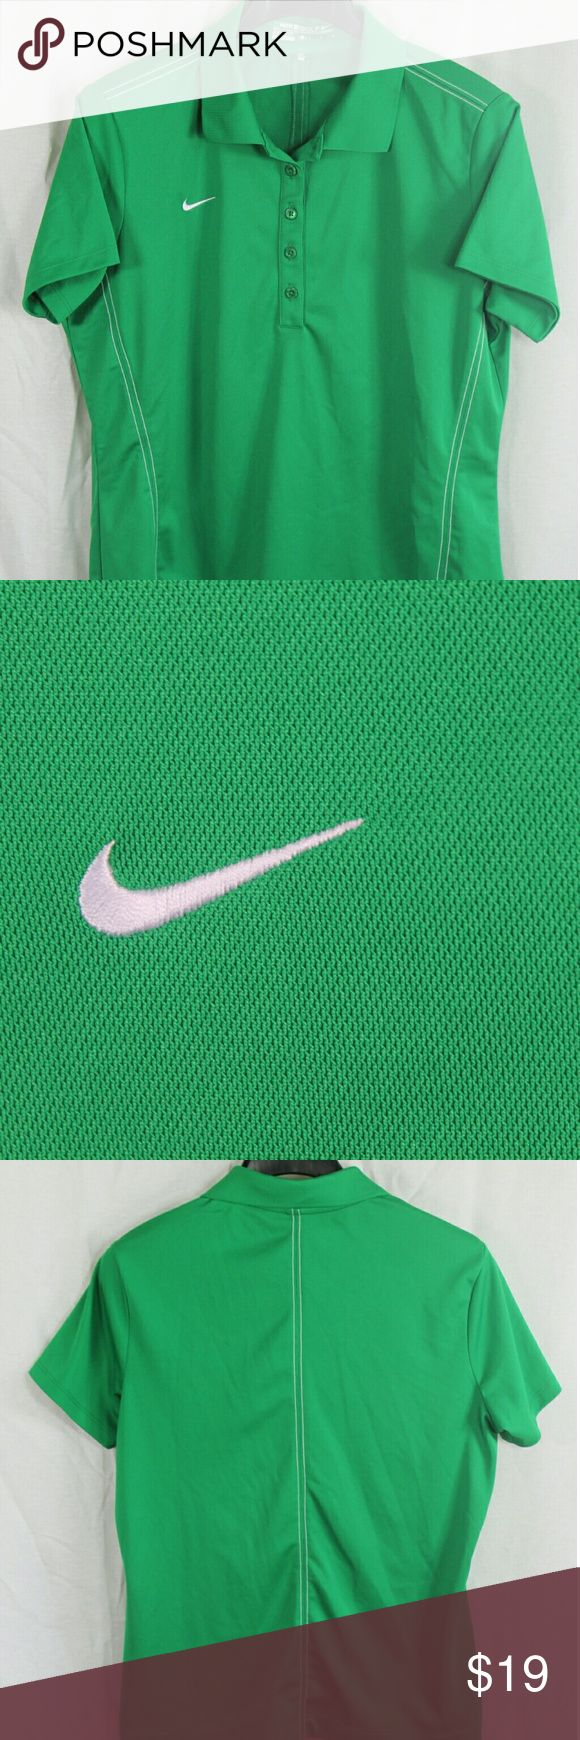 """YOUTH NIKE GOLF GREEN DRI-FIT POLO SHIRT LARGE BRA SIZE:     YOUTH LARGE    ARMPIT - TO - ARMPIT:     18""""   LENGTH DOWN BACK:     25""""   STYLE:     POLO   MATERIAL:     100% POLY   CONDITION:        BRAND NEW WITHOUT TAGS. SOURCED DIRECTLY FROM A NATIONAL UPSCALE U.S. RETAILER. QUALITY AND AUTHENTICITY GUARANTEED! Nike Shirts & Tops Polos"""